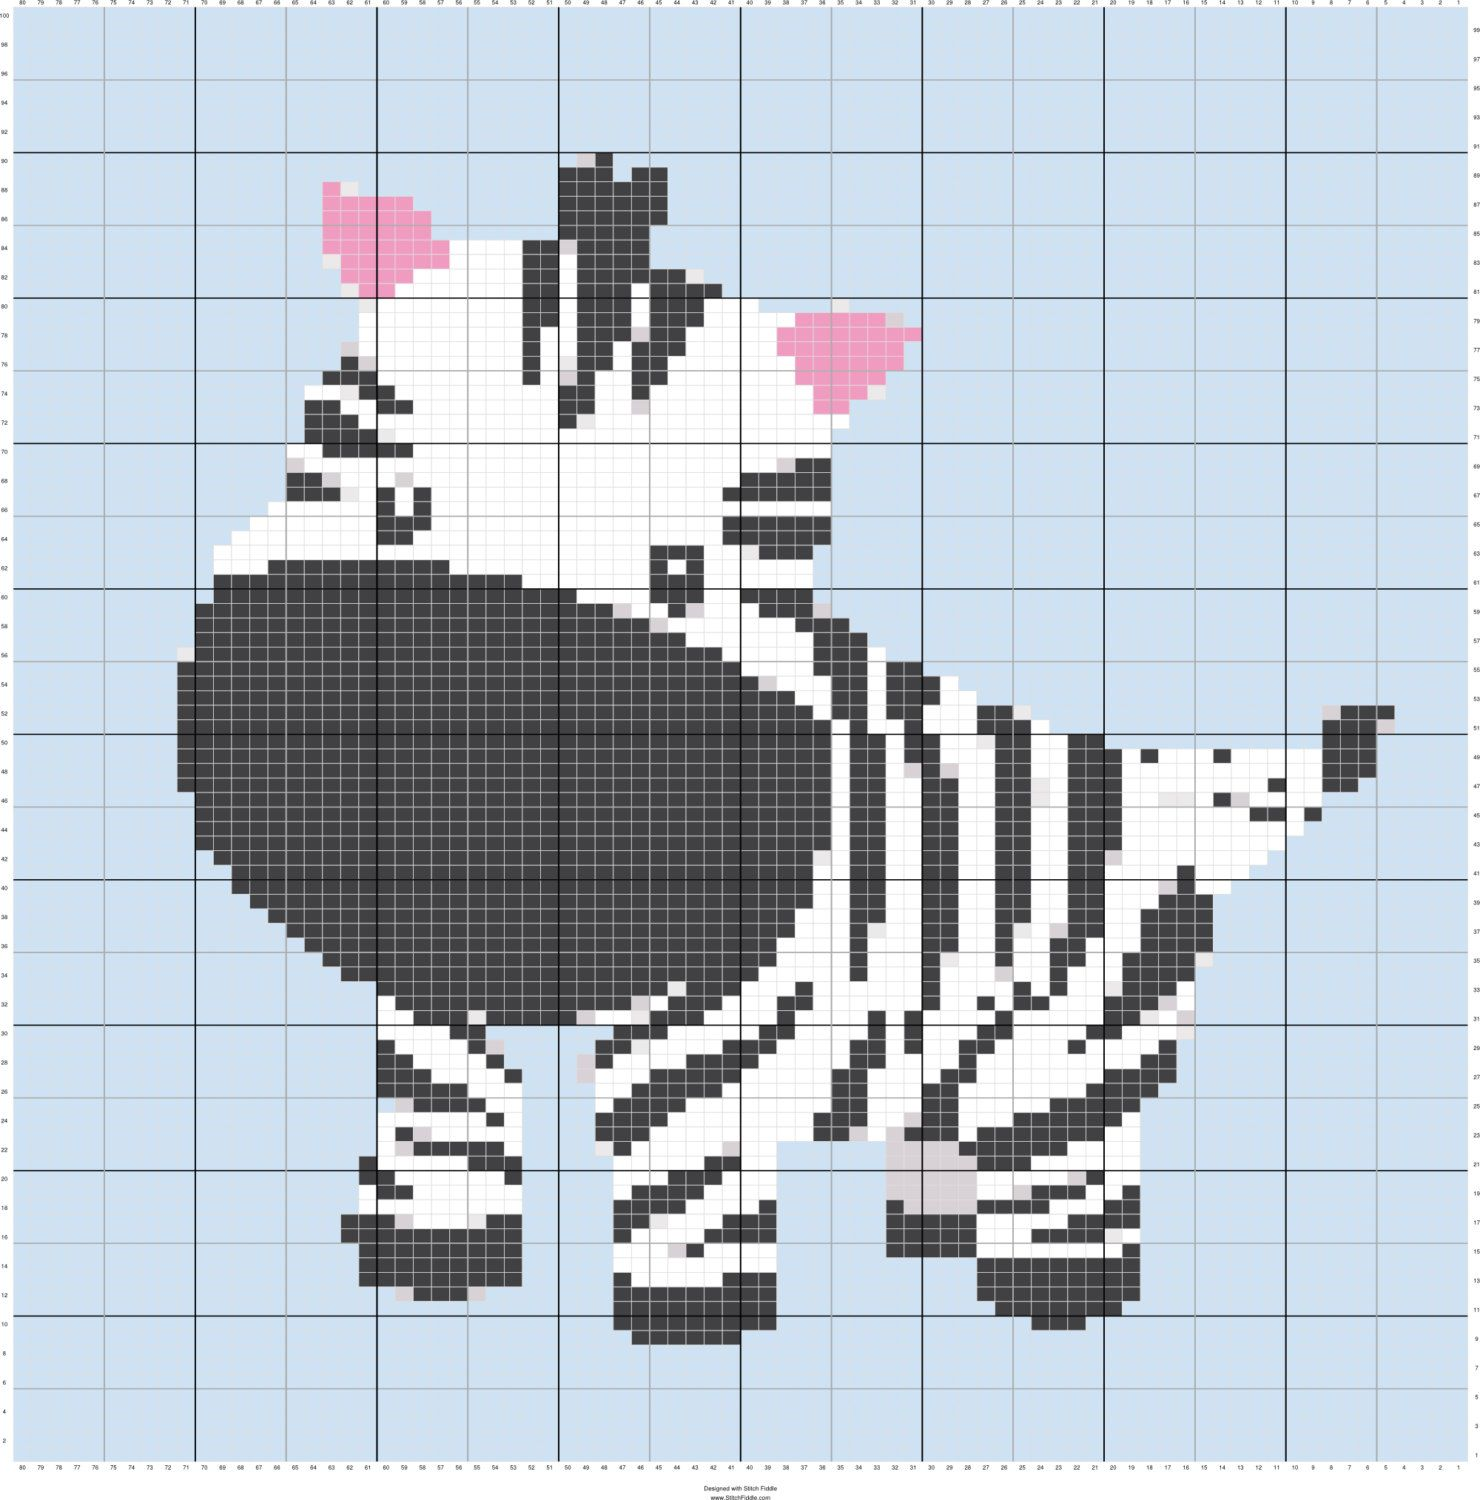 Baby Zebra Intarsia Knitting Chart, Fiber Art Designs, Knitting ...